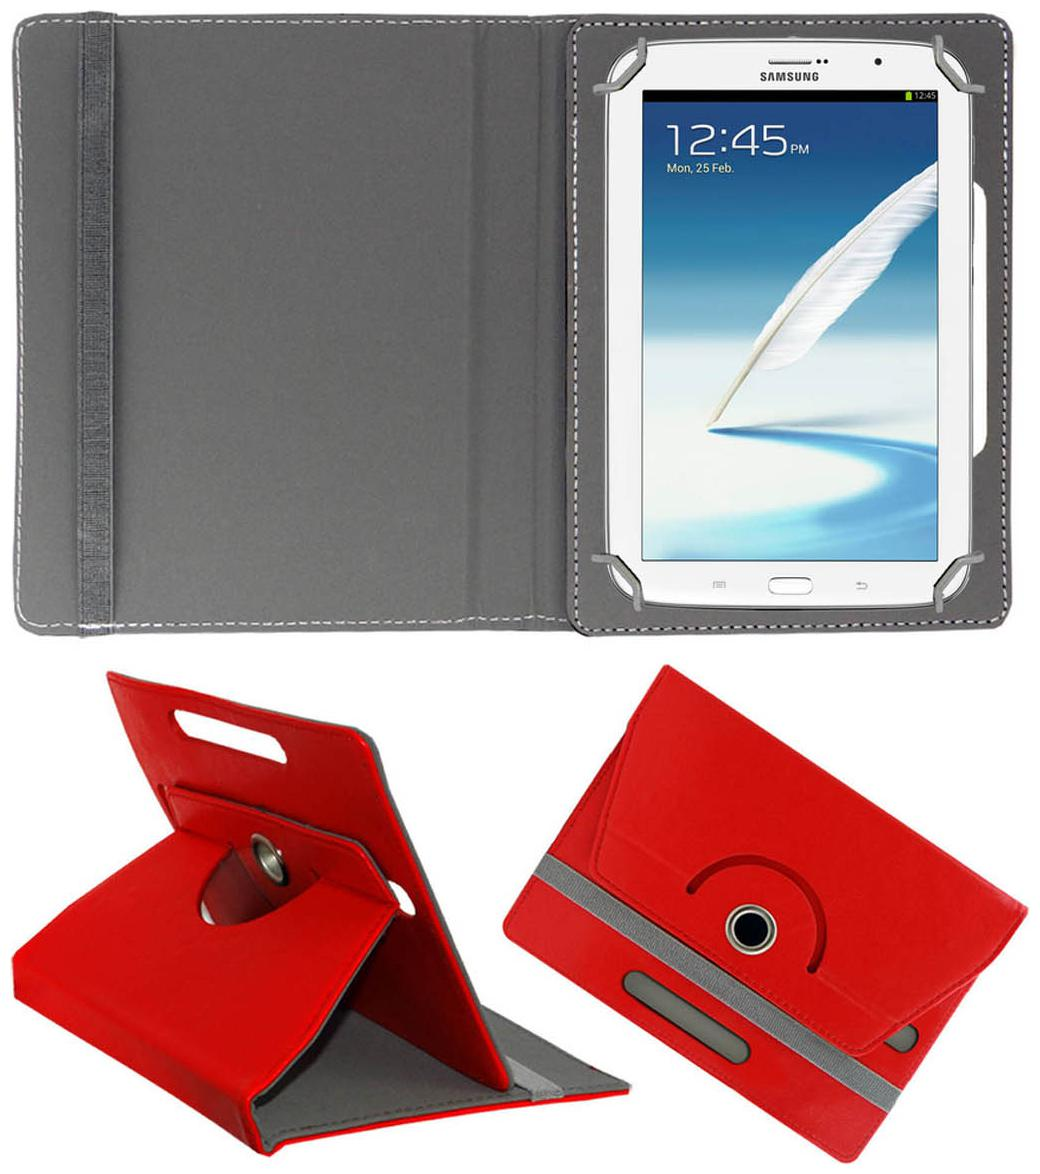 Acm Rotating 360 ° Book Cover For Samsung Galaxy Note 510 N5100  Red  by Accessories Masters